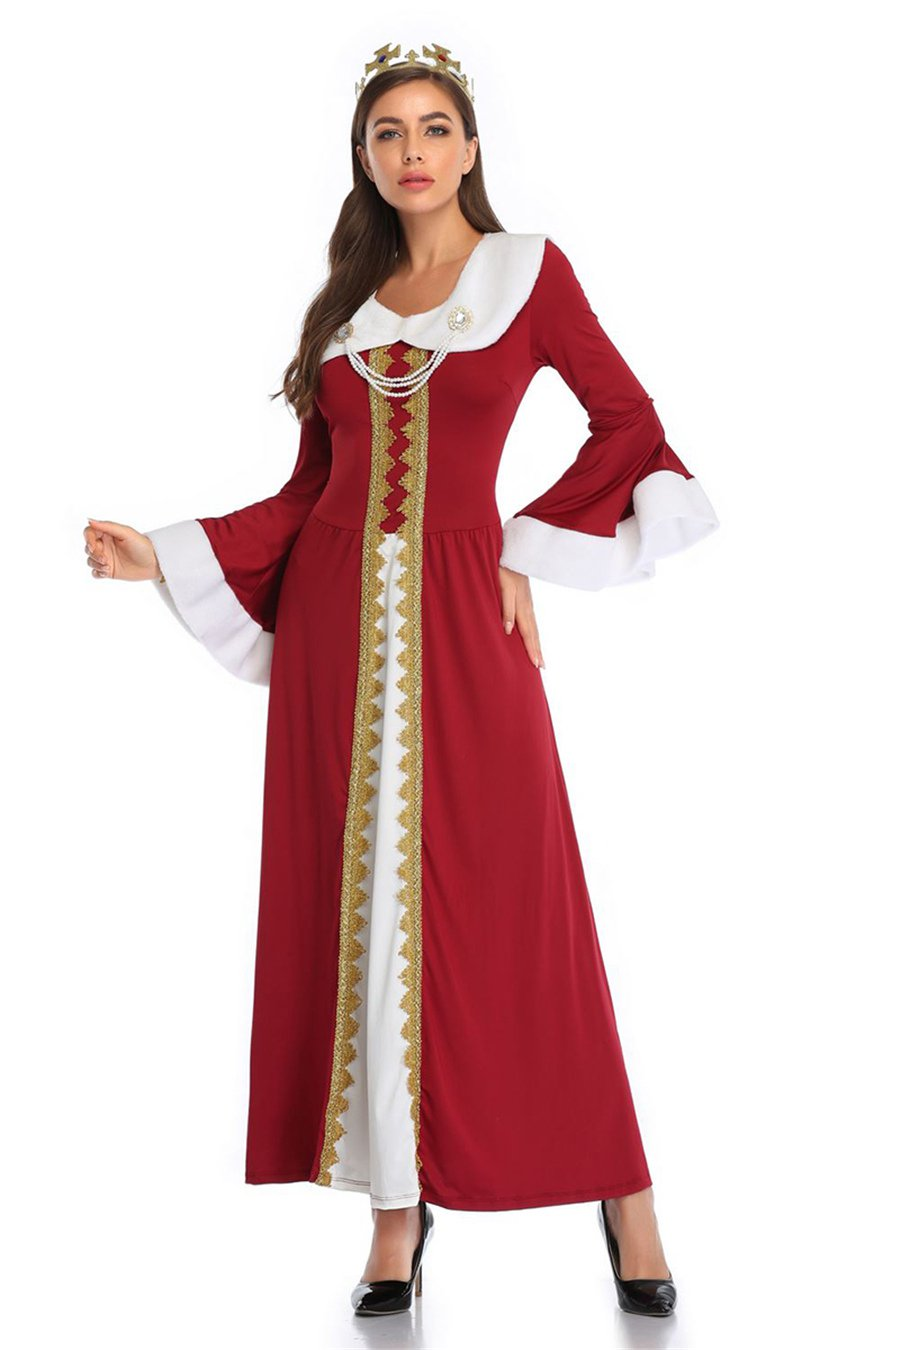 Halloween Queen Costume Carnival Uniform Medieval Cosplay Uniform Mardi Gras Ancient Outfits